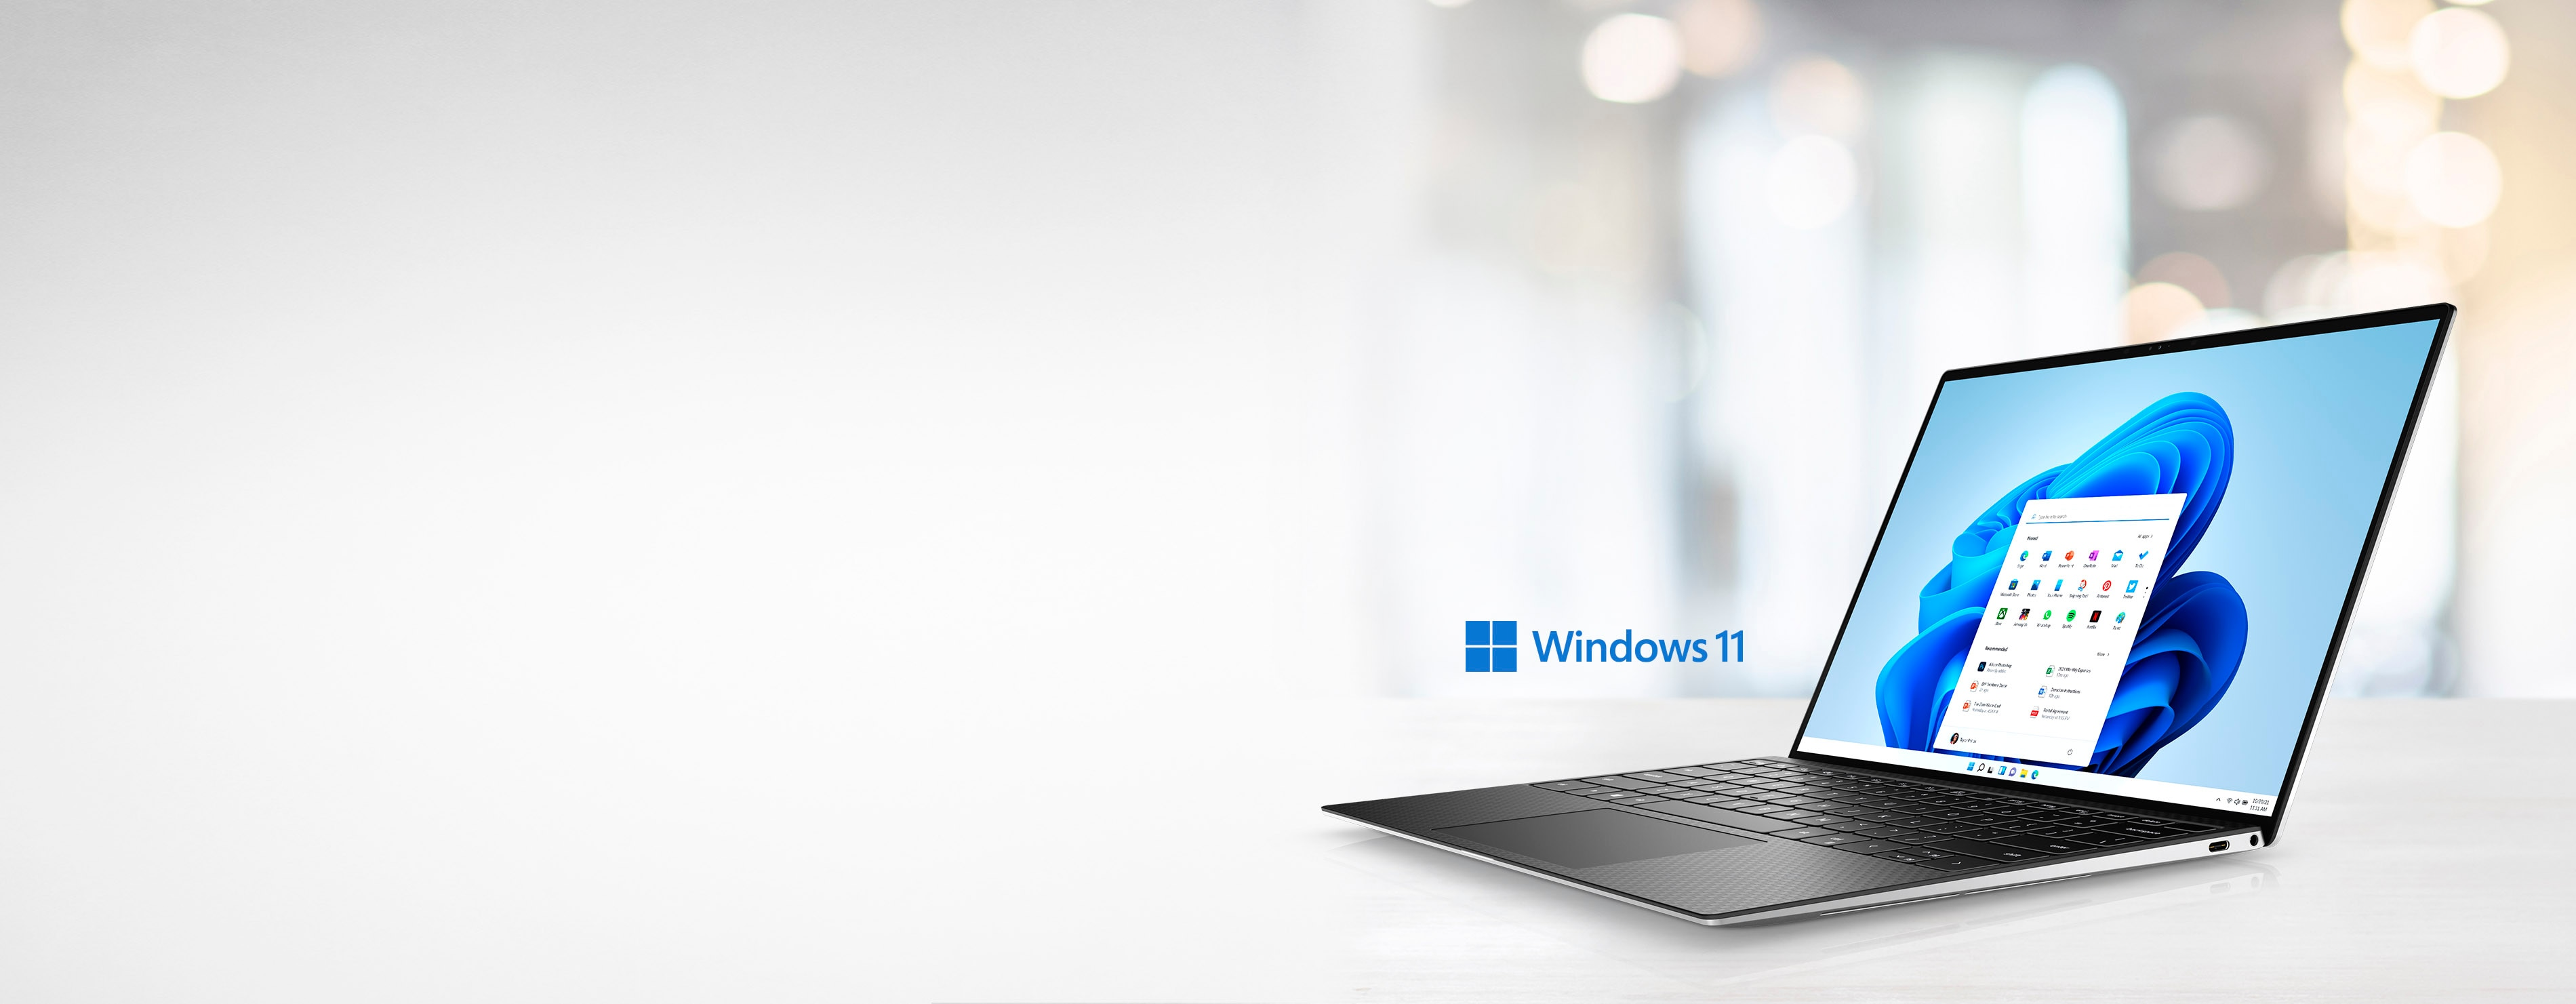 Welcome the New Windows 11